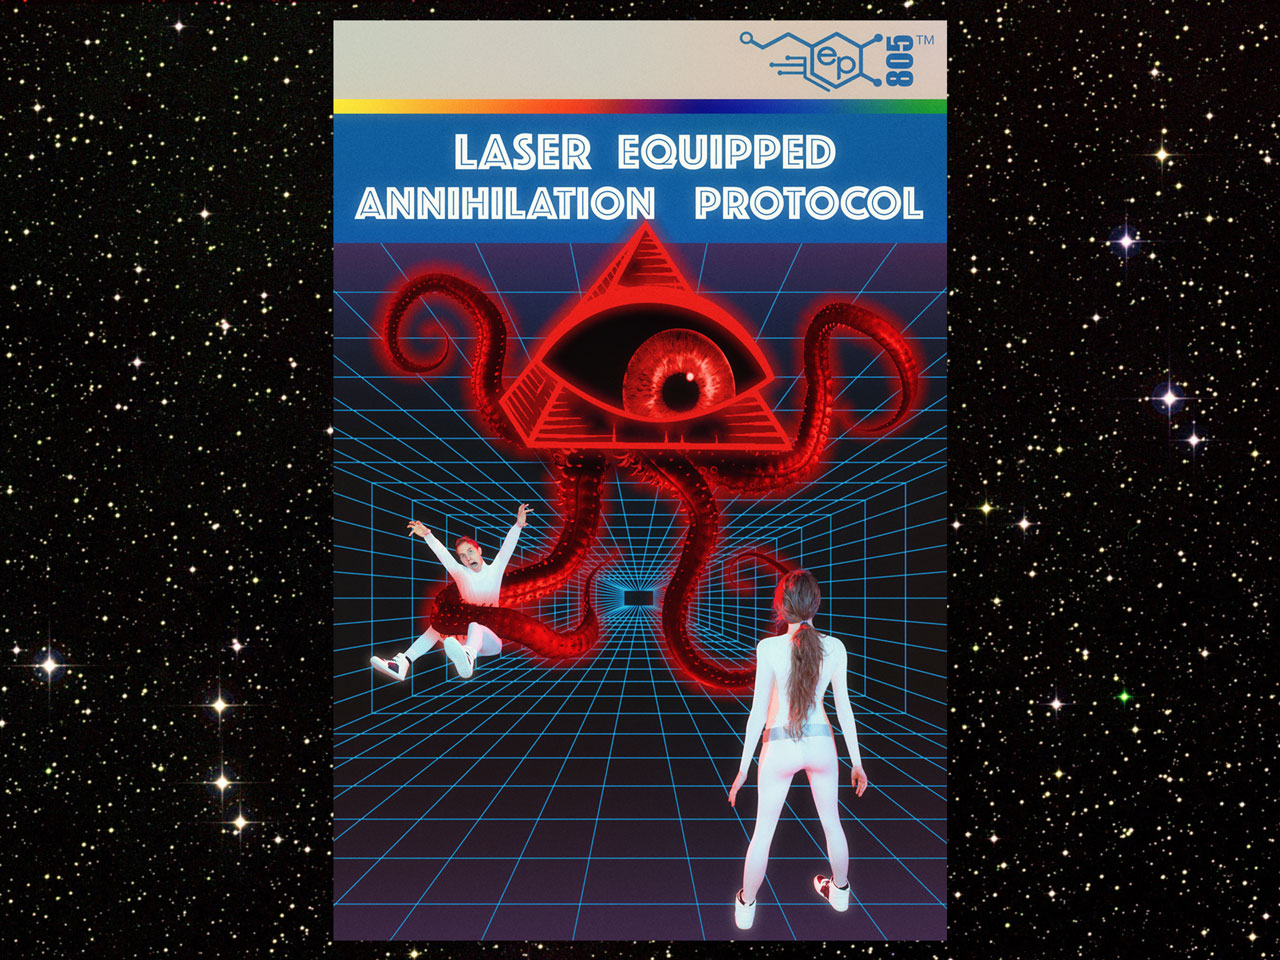 Laser Equipped Annihilation Protocol at Electric Perfume